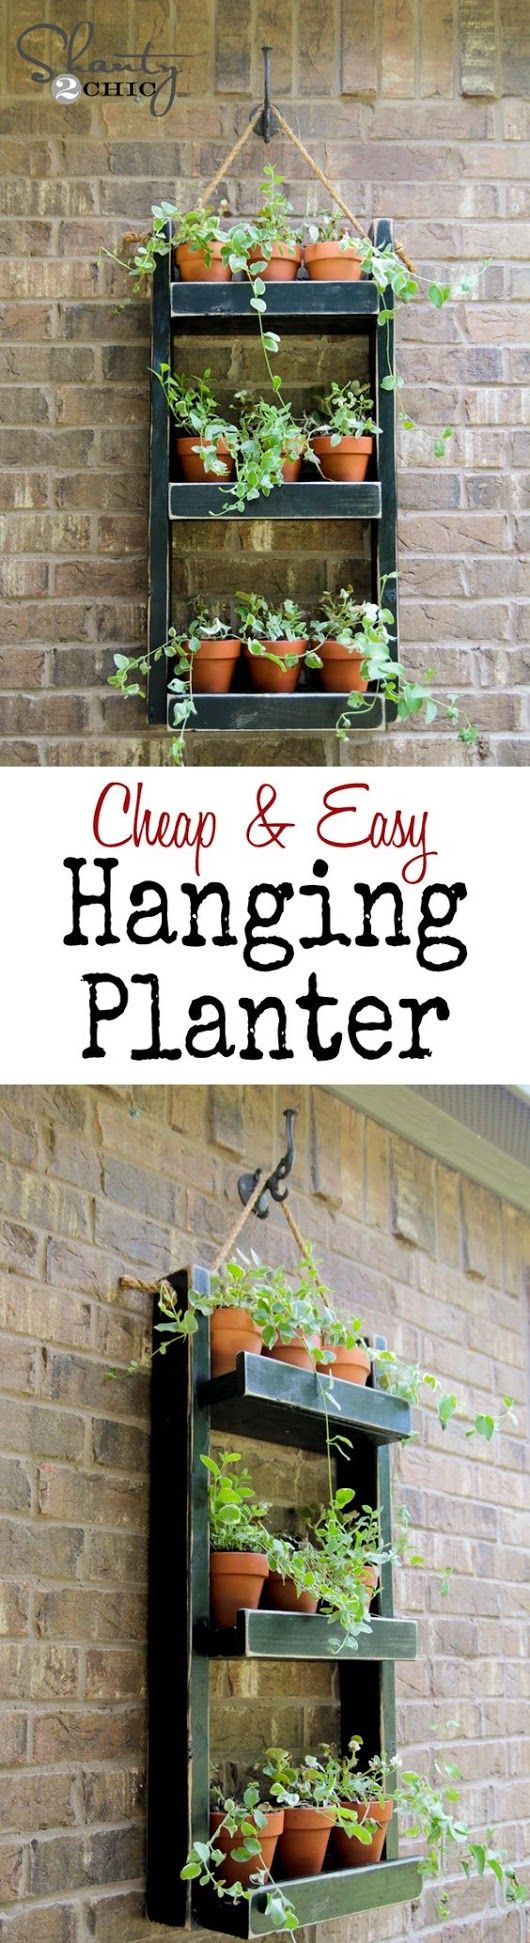 Cheap & easy hanging planter